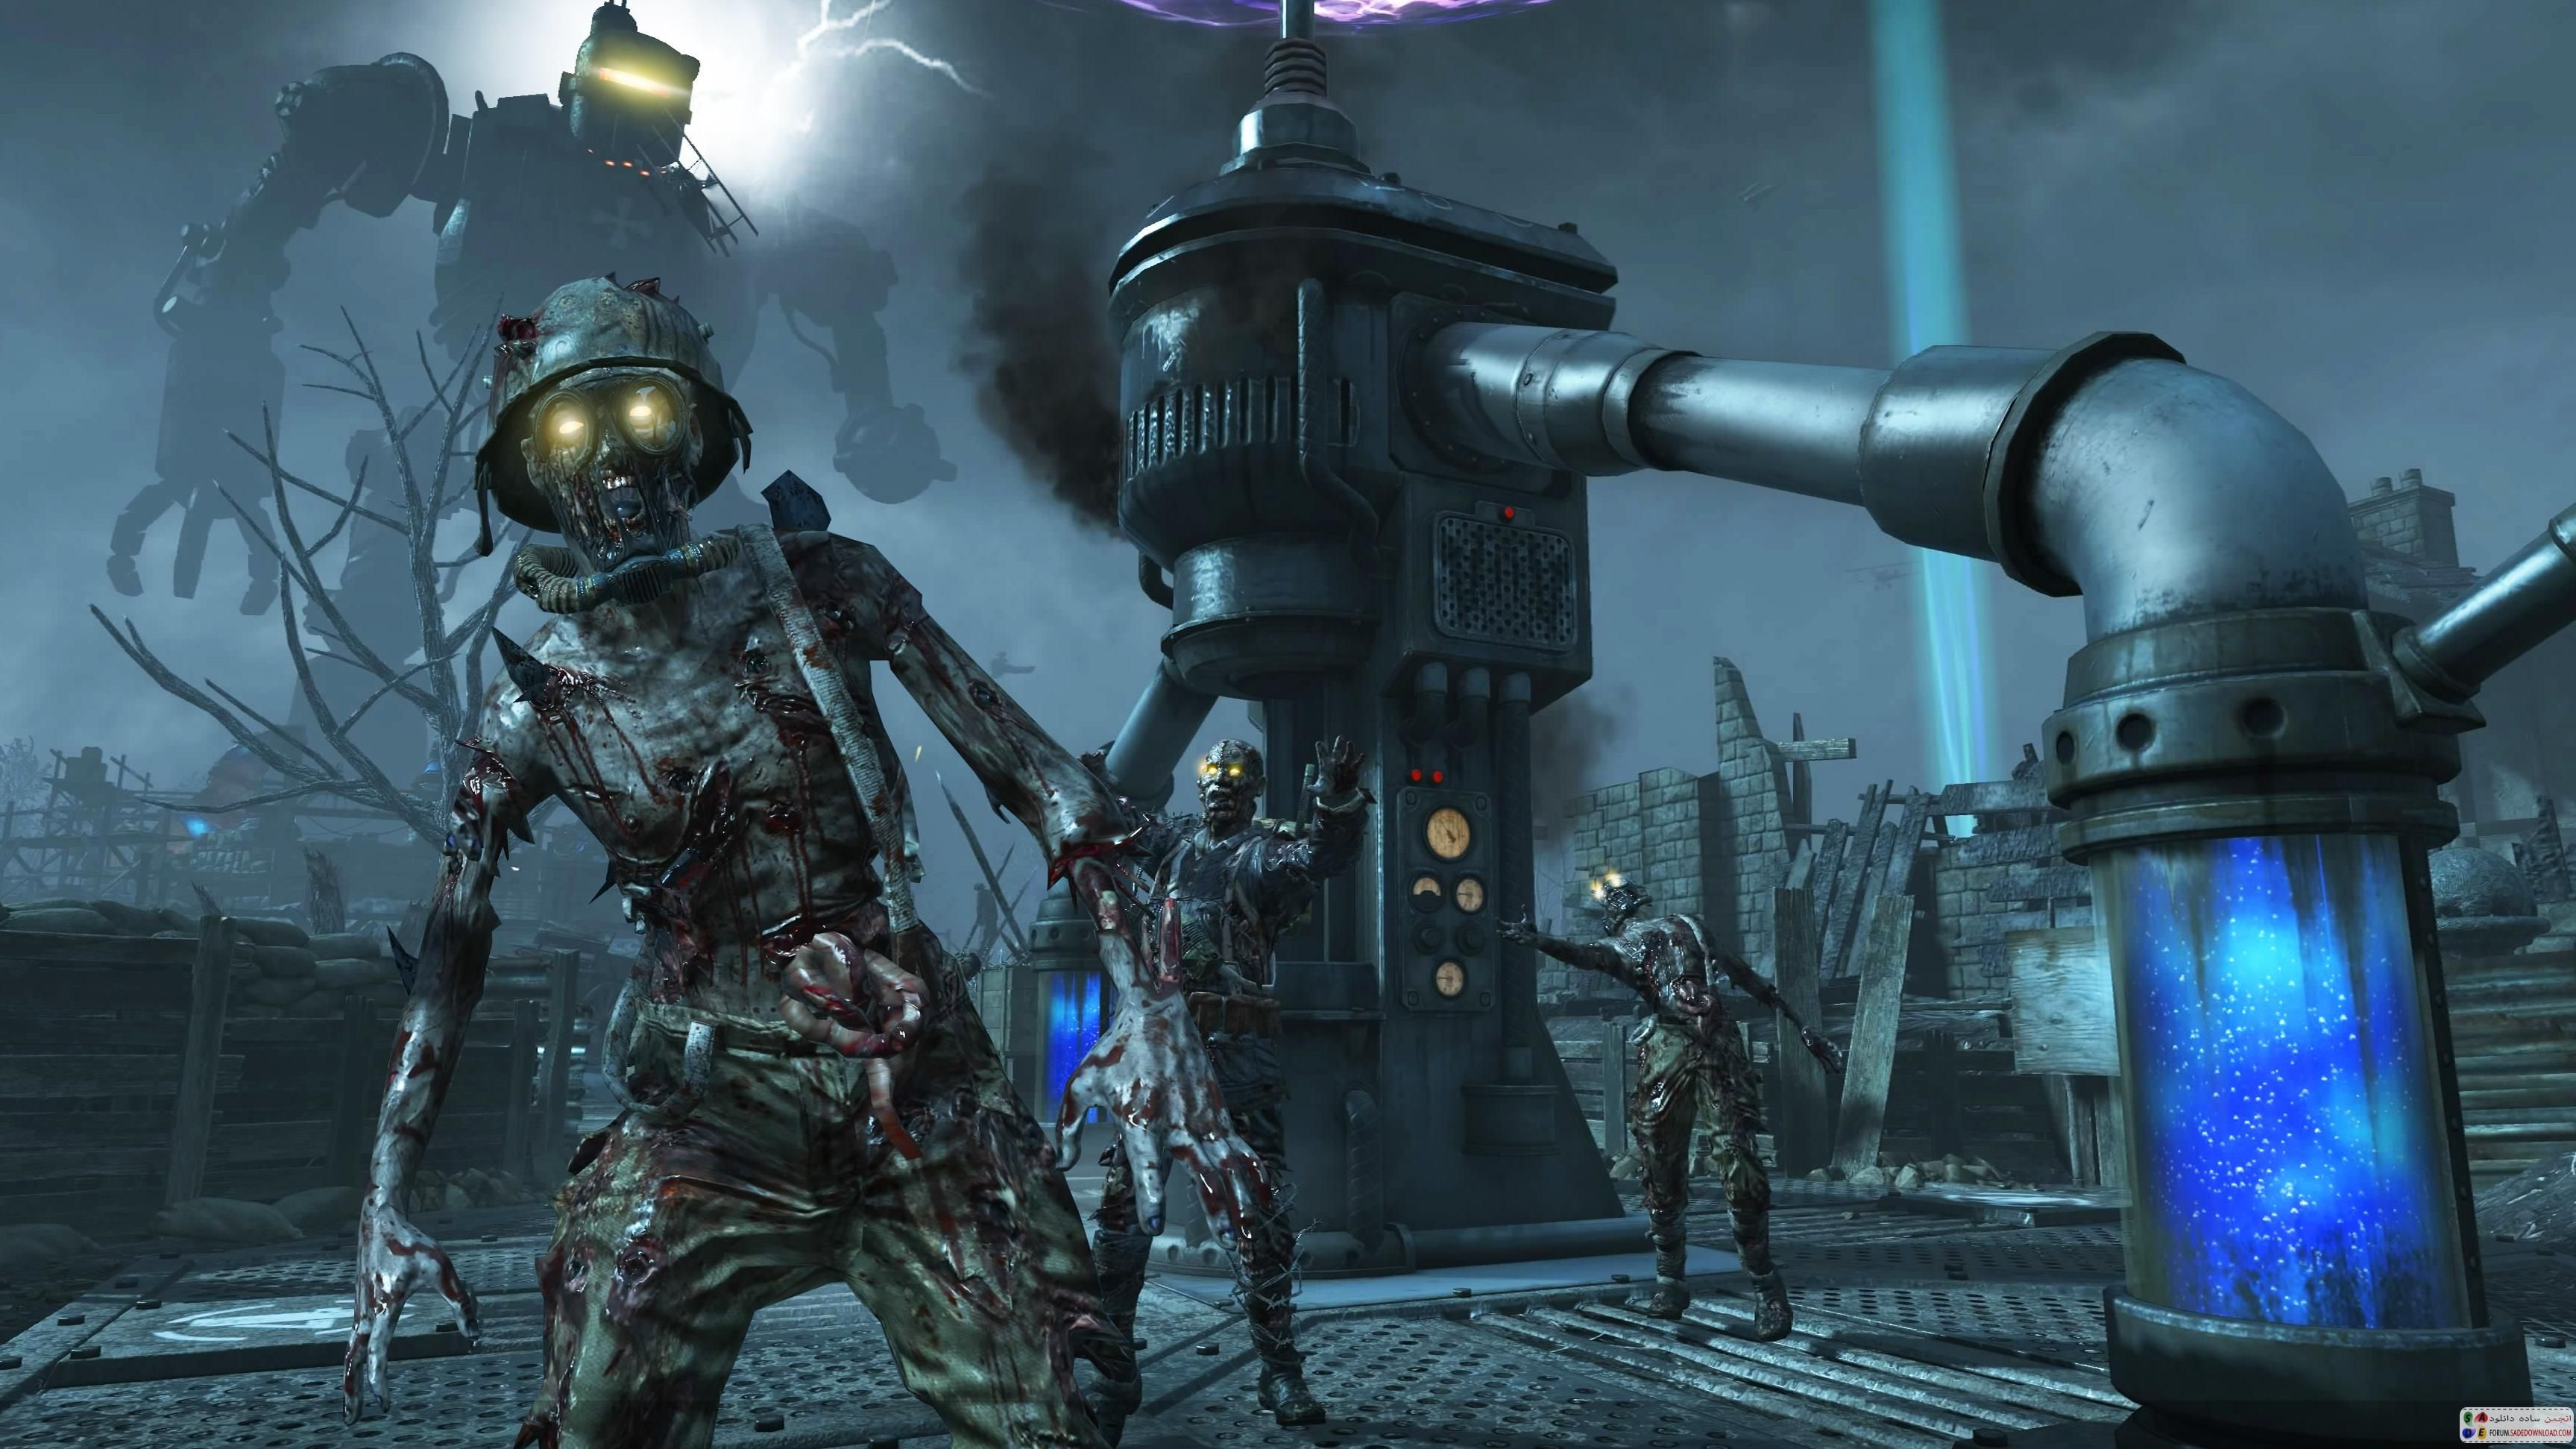 Wallpapers Of Call Of Duty Black Ops 2 Gallery 77 Plus Pic